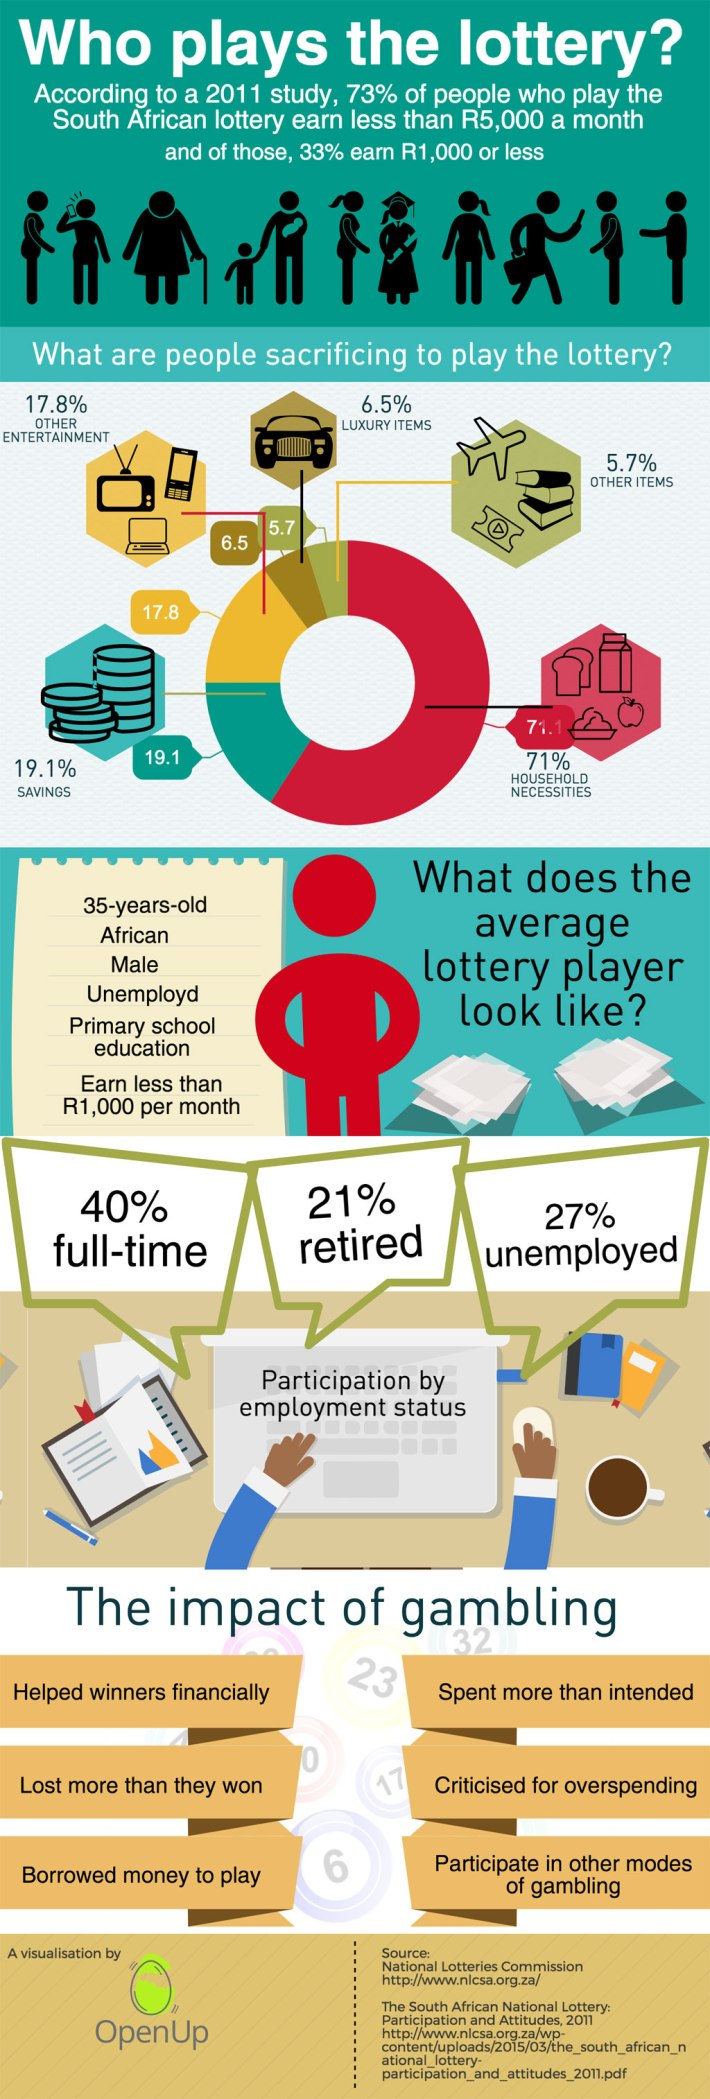 who plays lottery in south africa